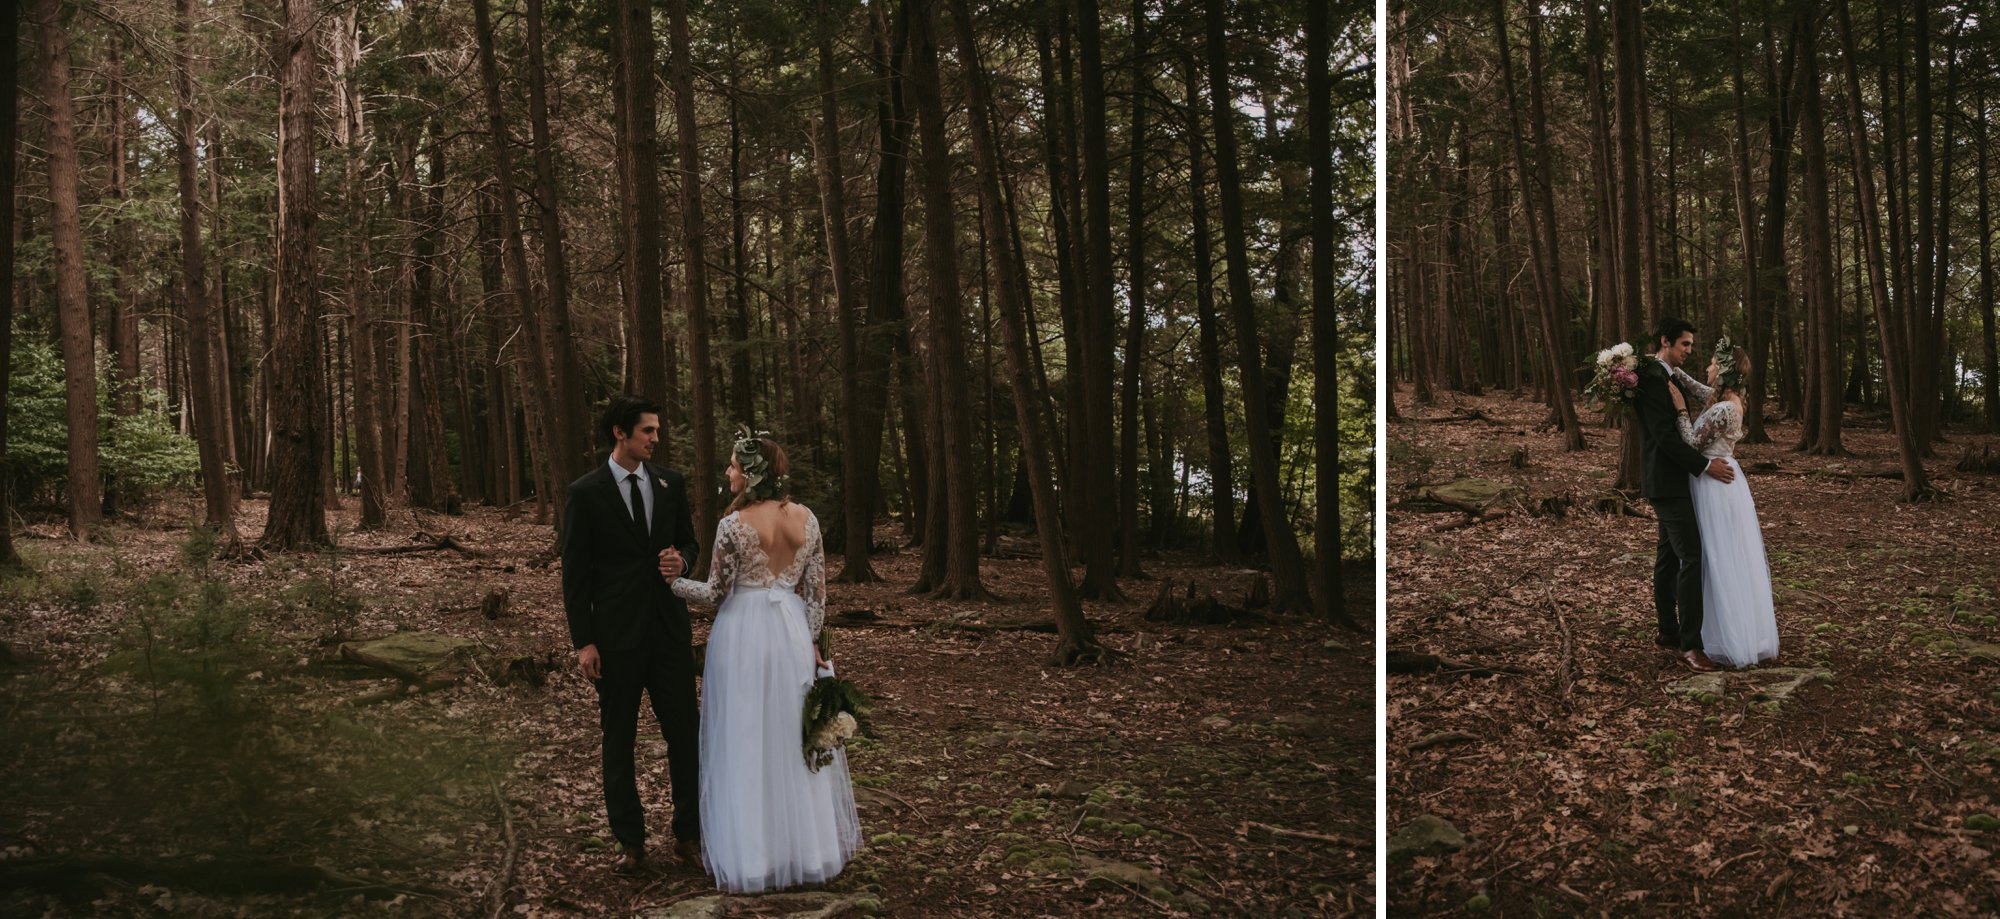 Rustic Intimate Vegan Forest Wedding with Handmade Dress. Forest Portrait